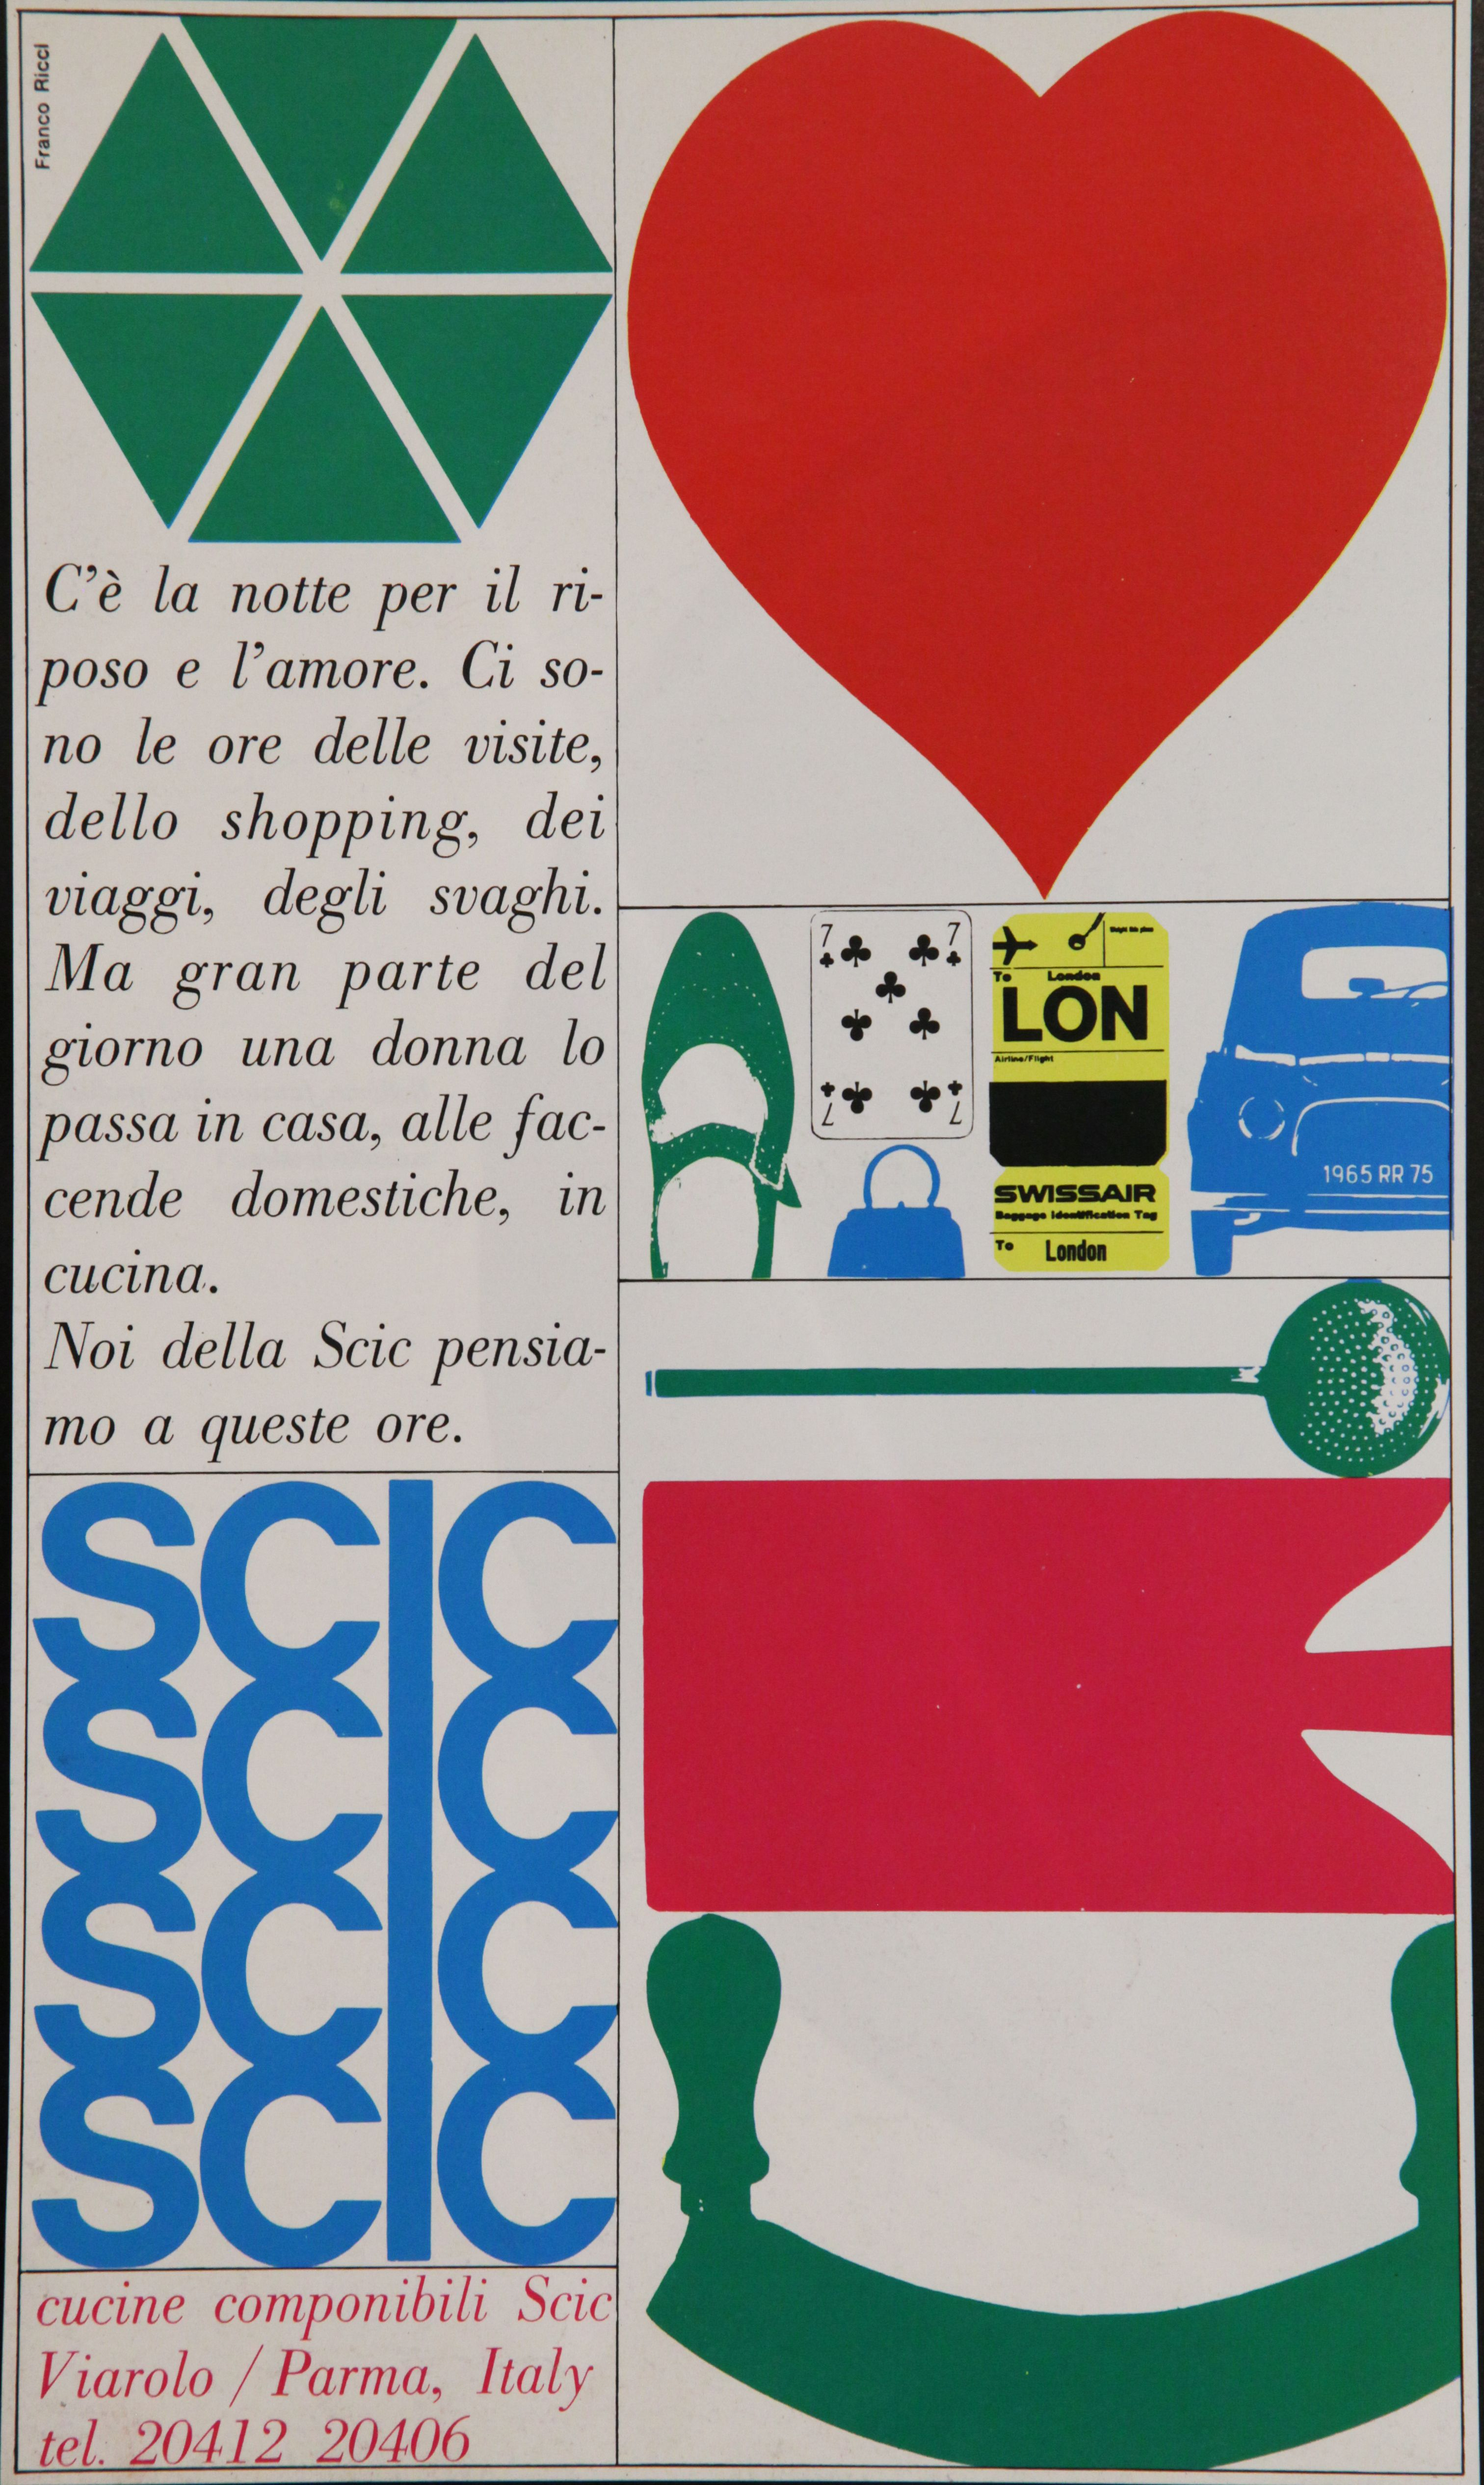 60 S Scic Poster By Franco Maria Ricci